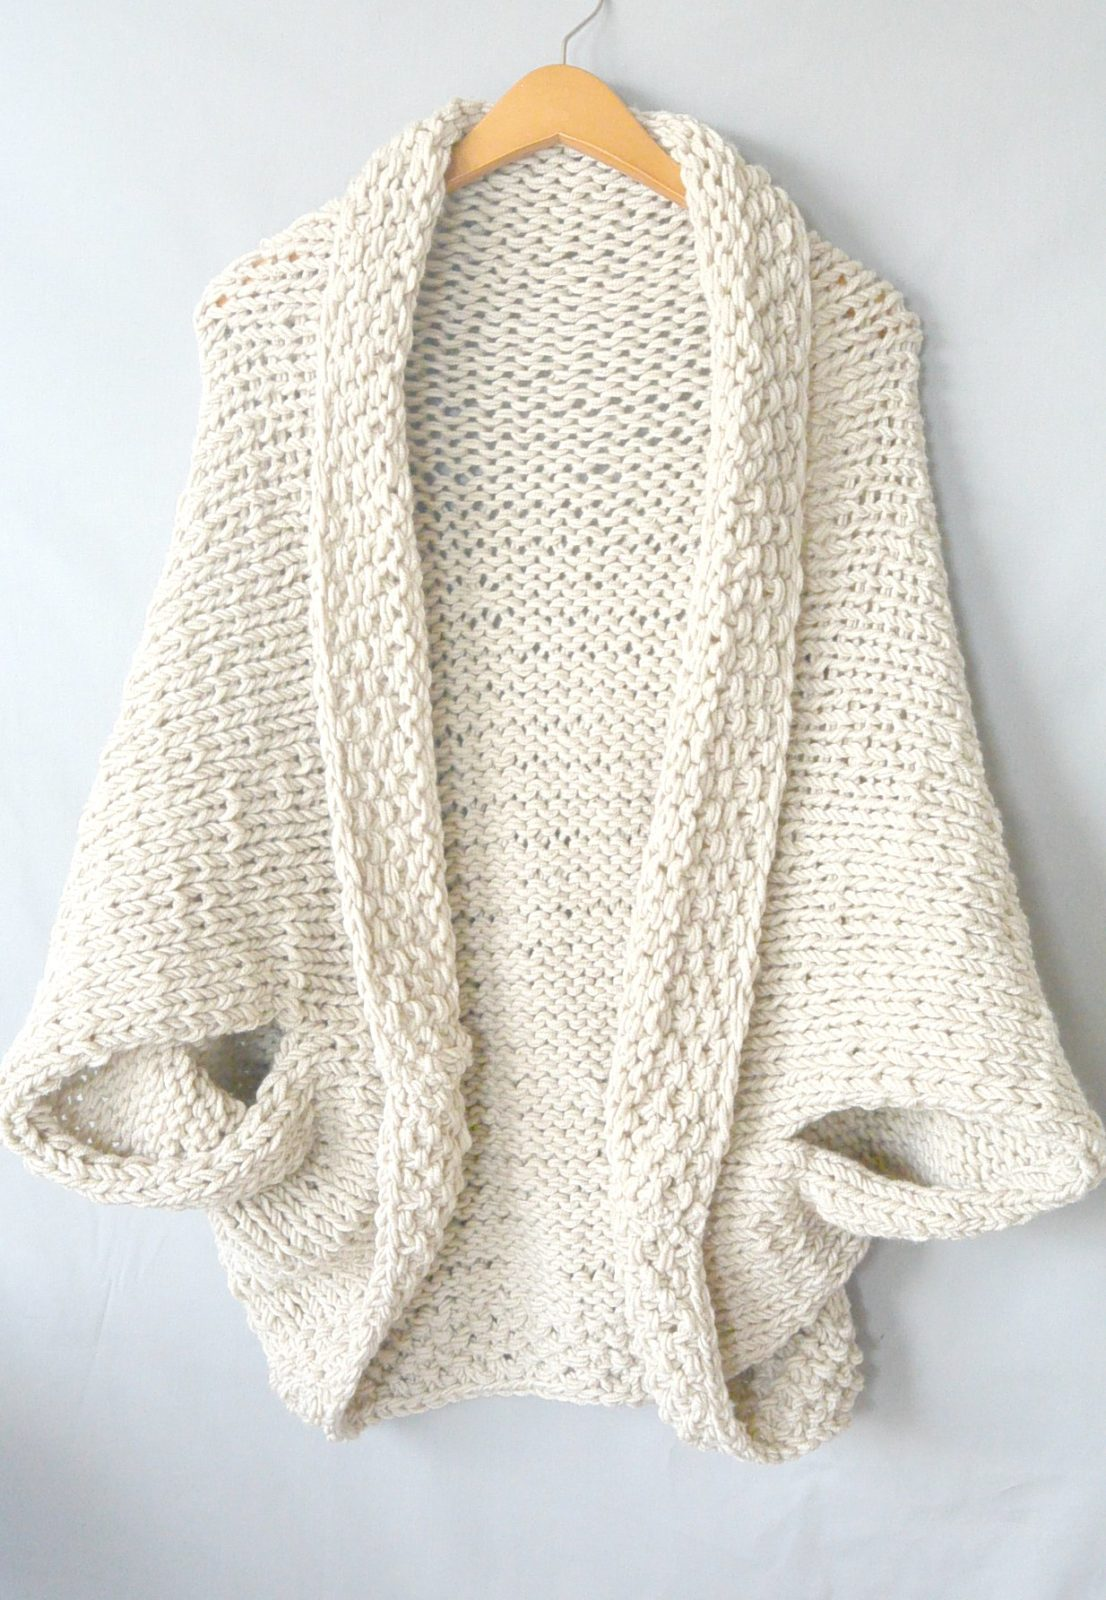 Knitting Pattern Chunky Wool Cardigan : Easy Knit Blanket Sweater Pattern   Mama In A Stitch